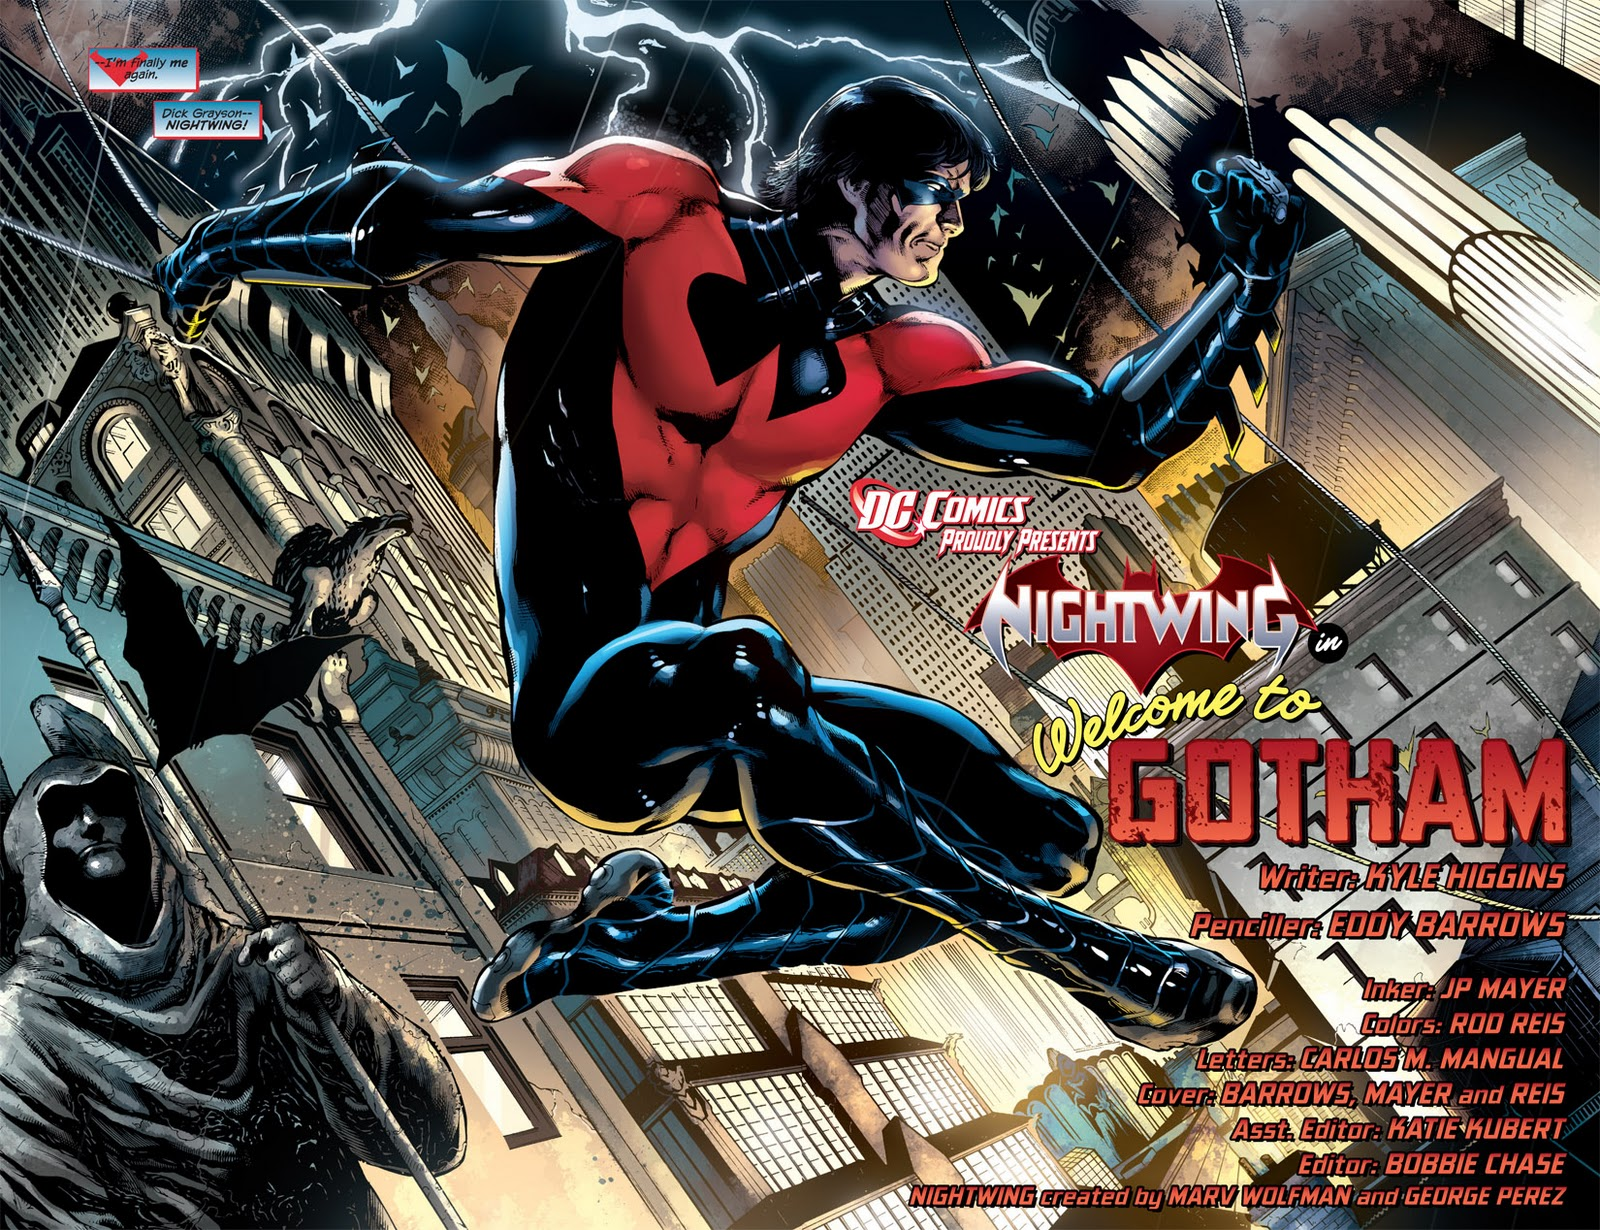 Batman family the new 52 nightwing costume in the new 52 dick has returned to the nightwing identity after briefly serving as batman he becomes the new head of halys circus after the former owner buycottarizona Choice Image